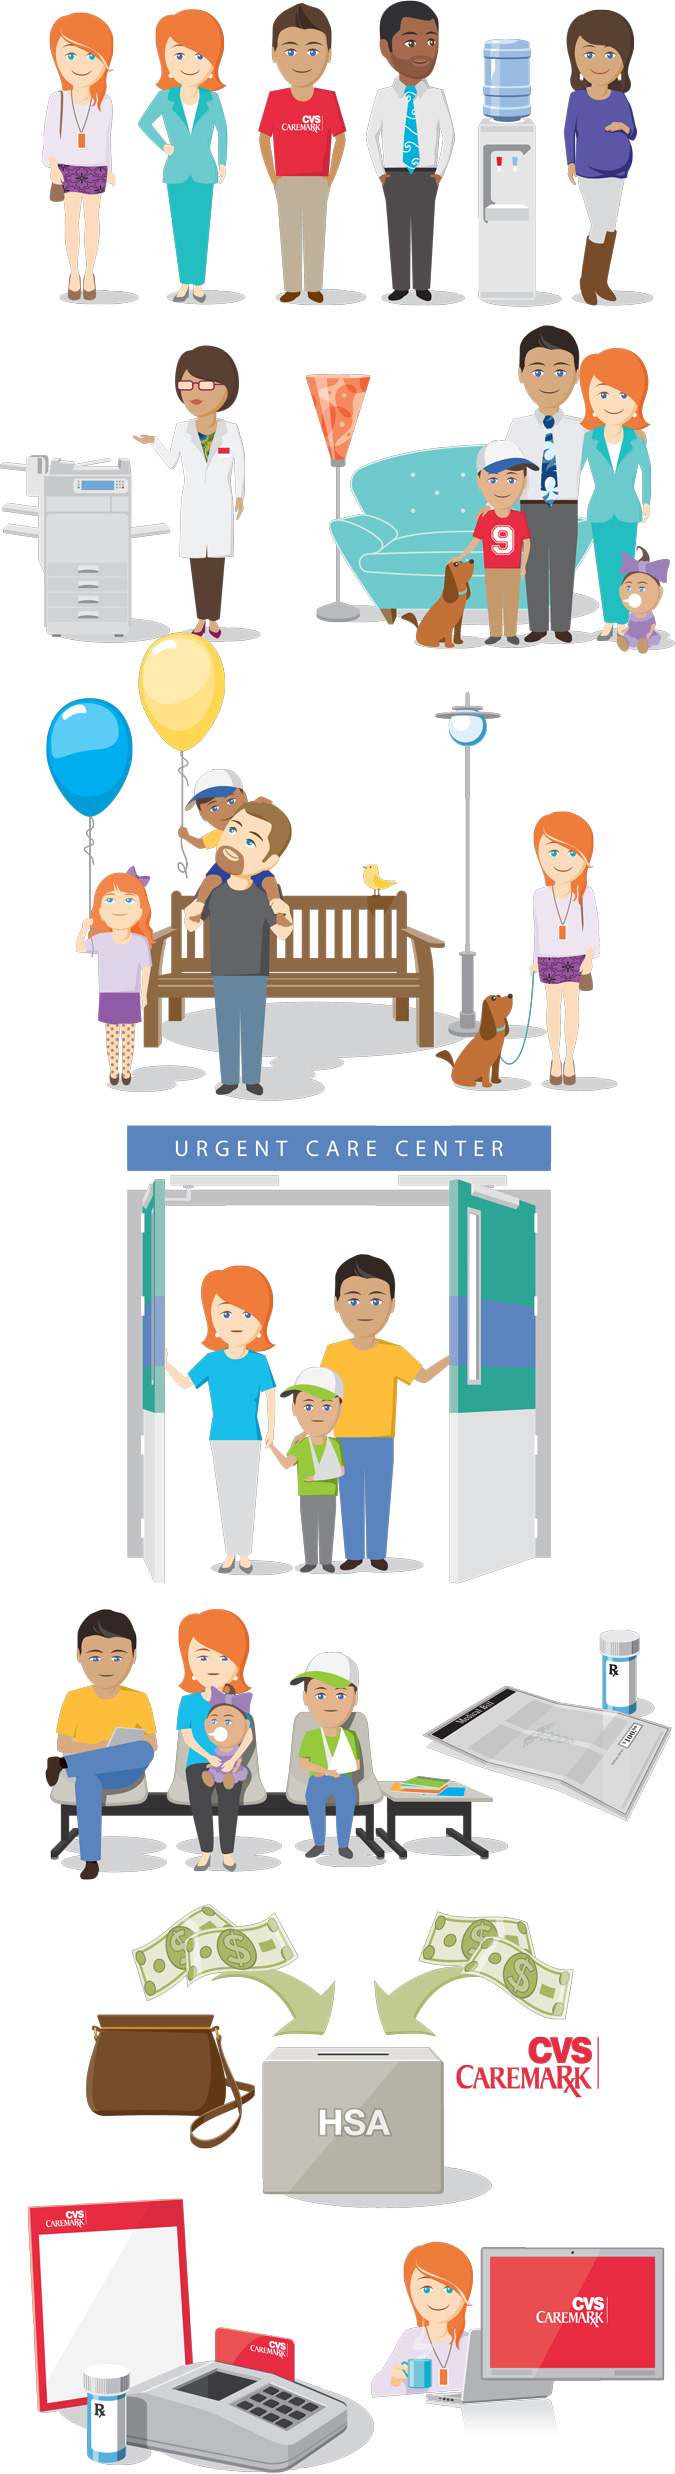 CVS_Infographic_Illustrations